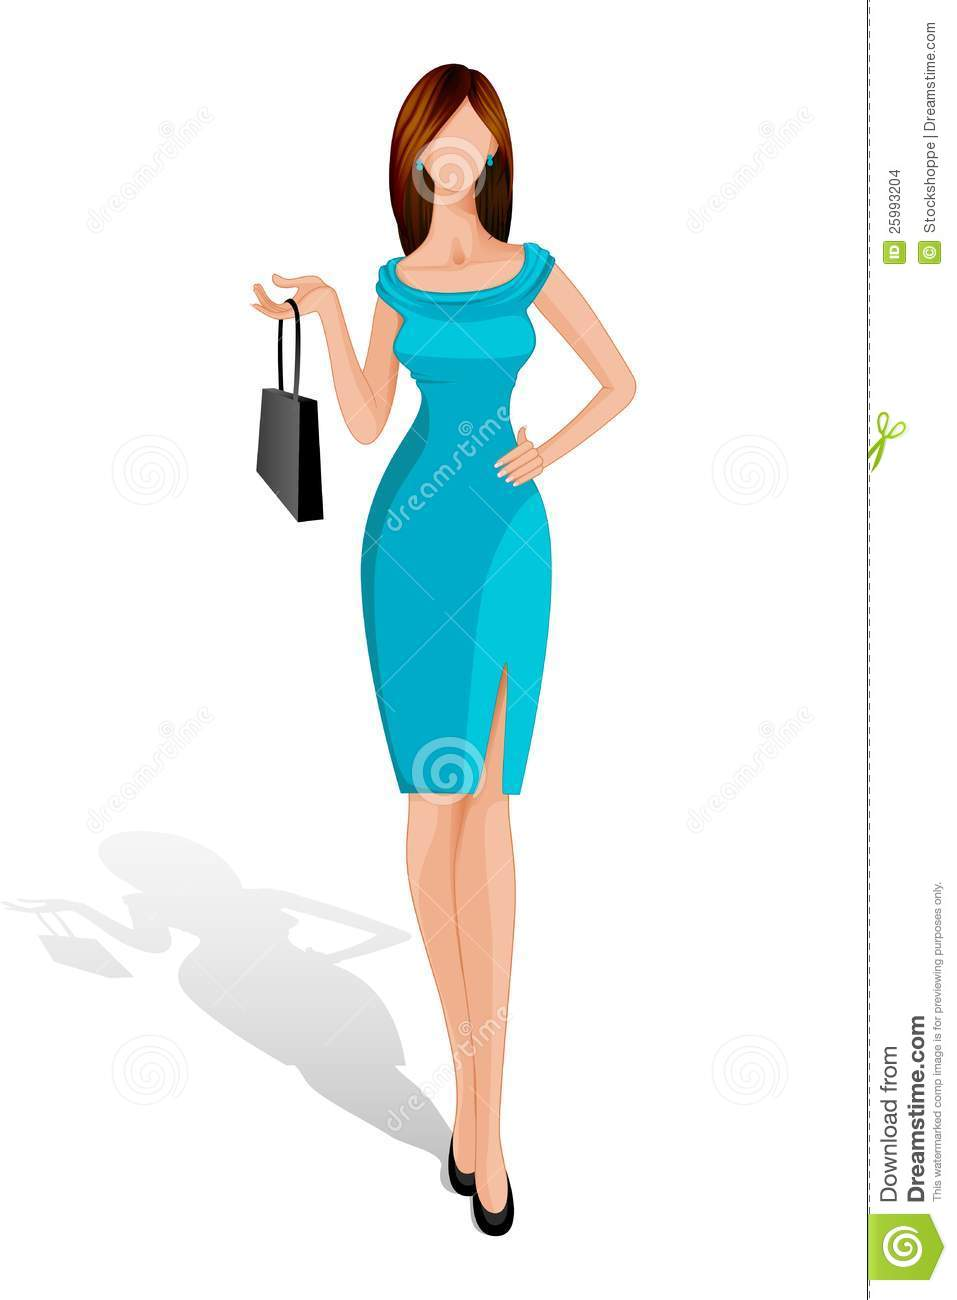 687a054a4d6 Lady with Handbag stock vector. Illustration of happy - 25993204